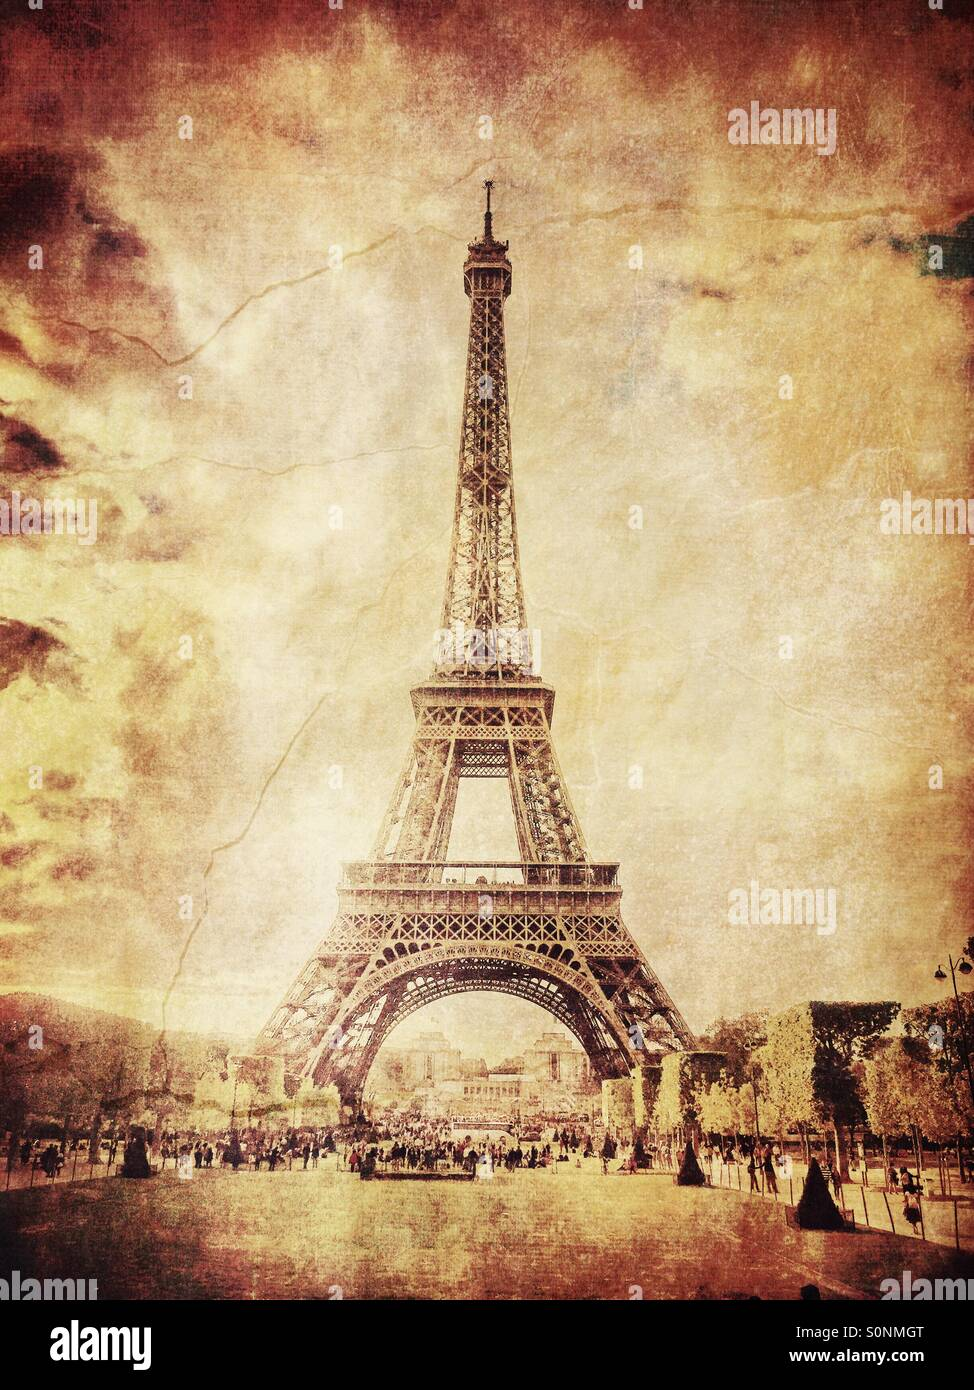 View of Eiffel Tower from Champs de Mars in Paris, France. Aged sepia tones and vintage paper texture overlay. Stock Photo